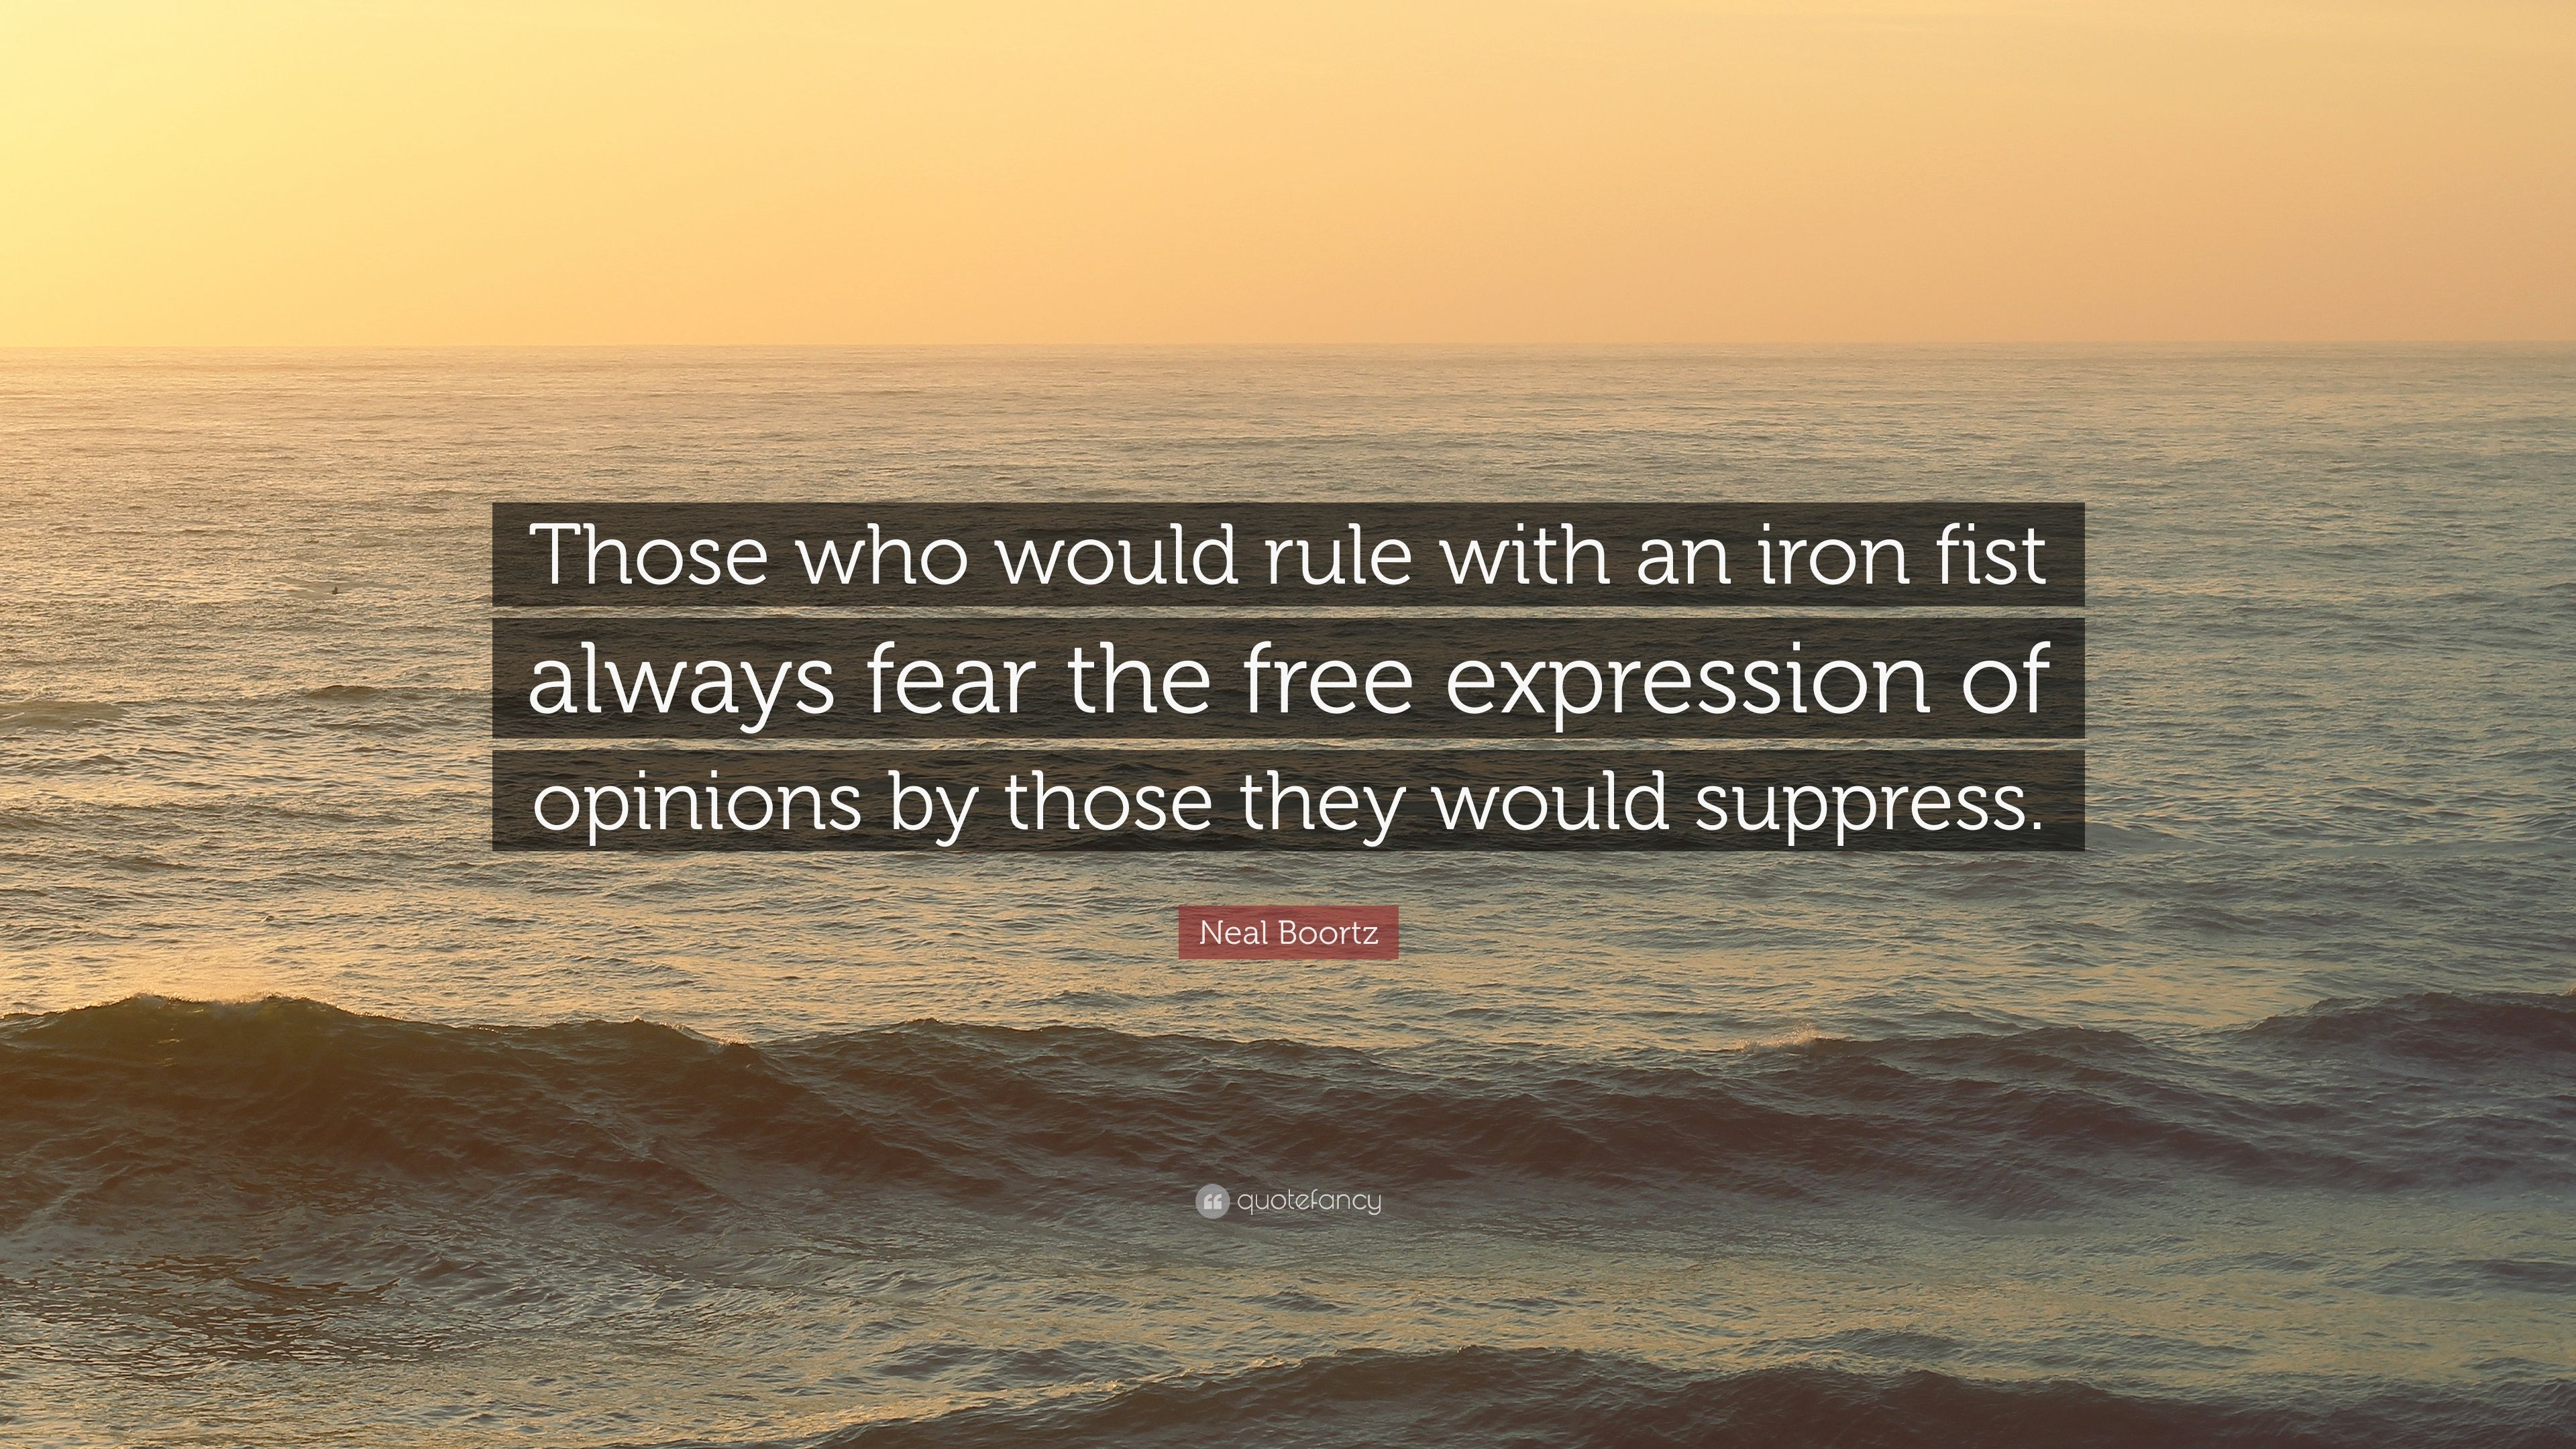 Share your rule with a iron fist